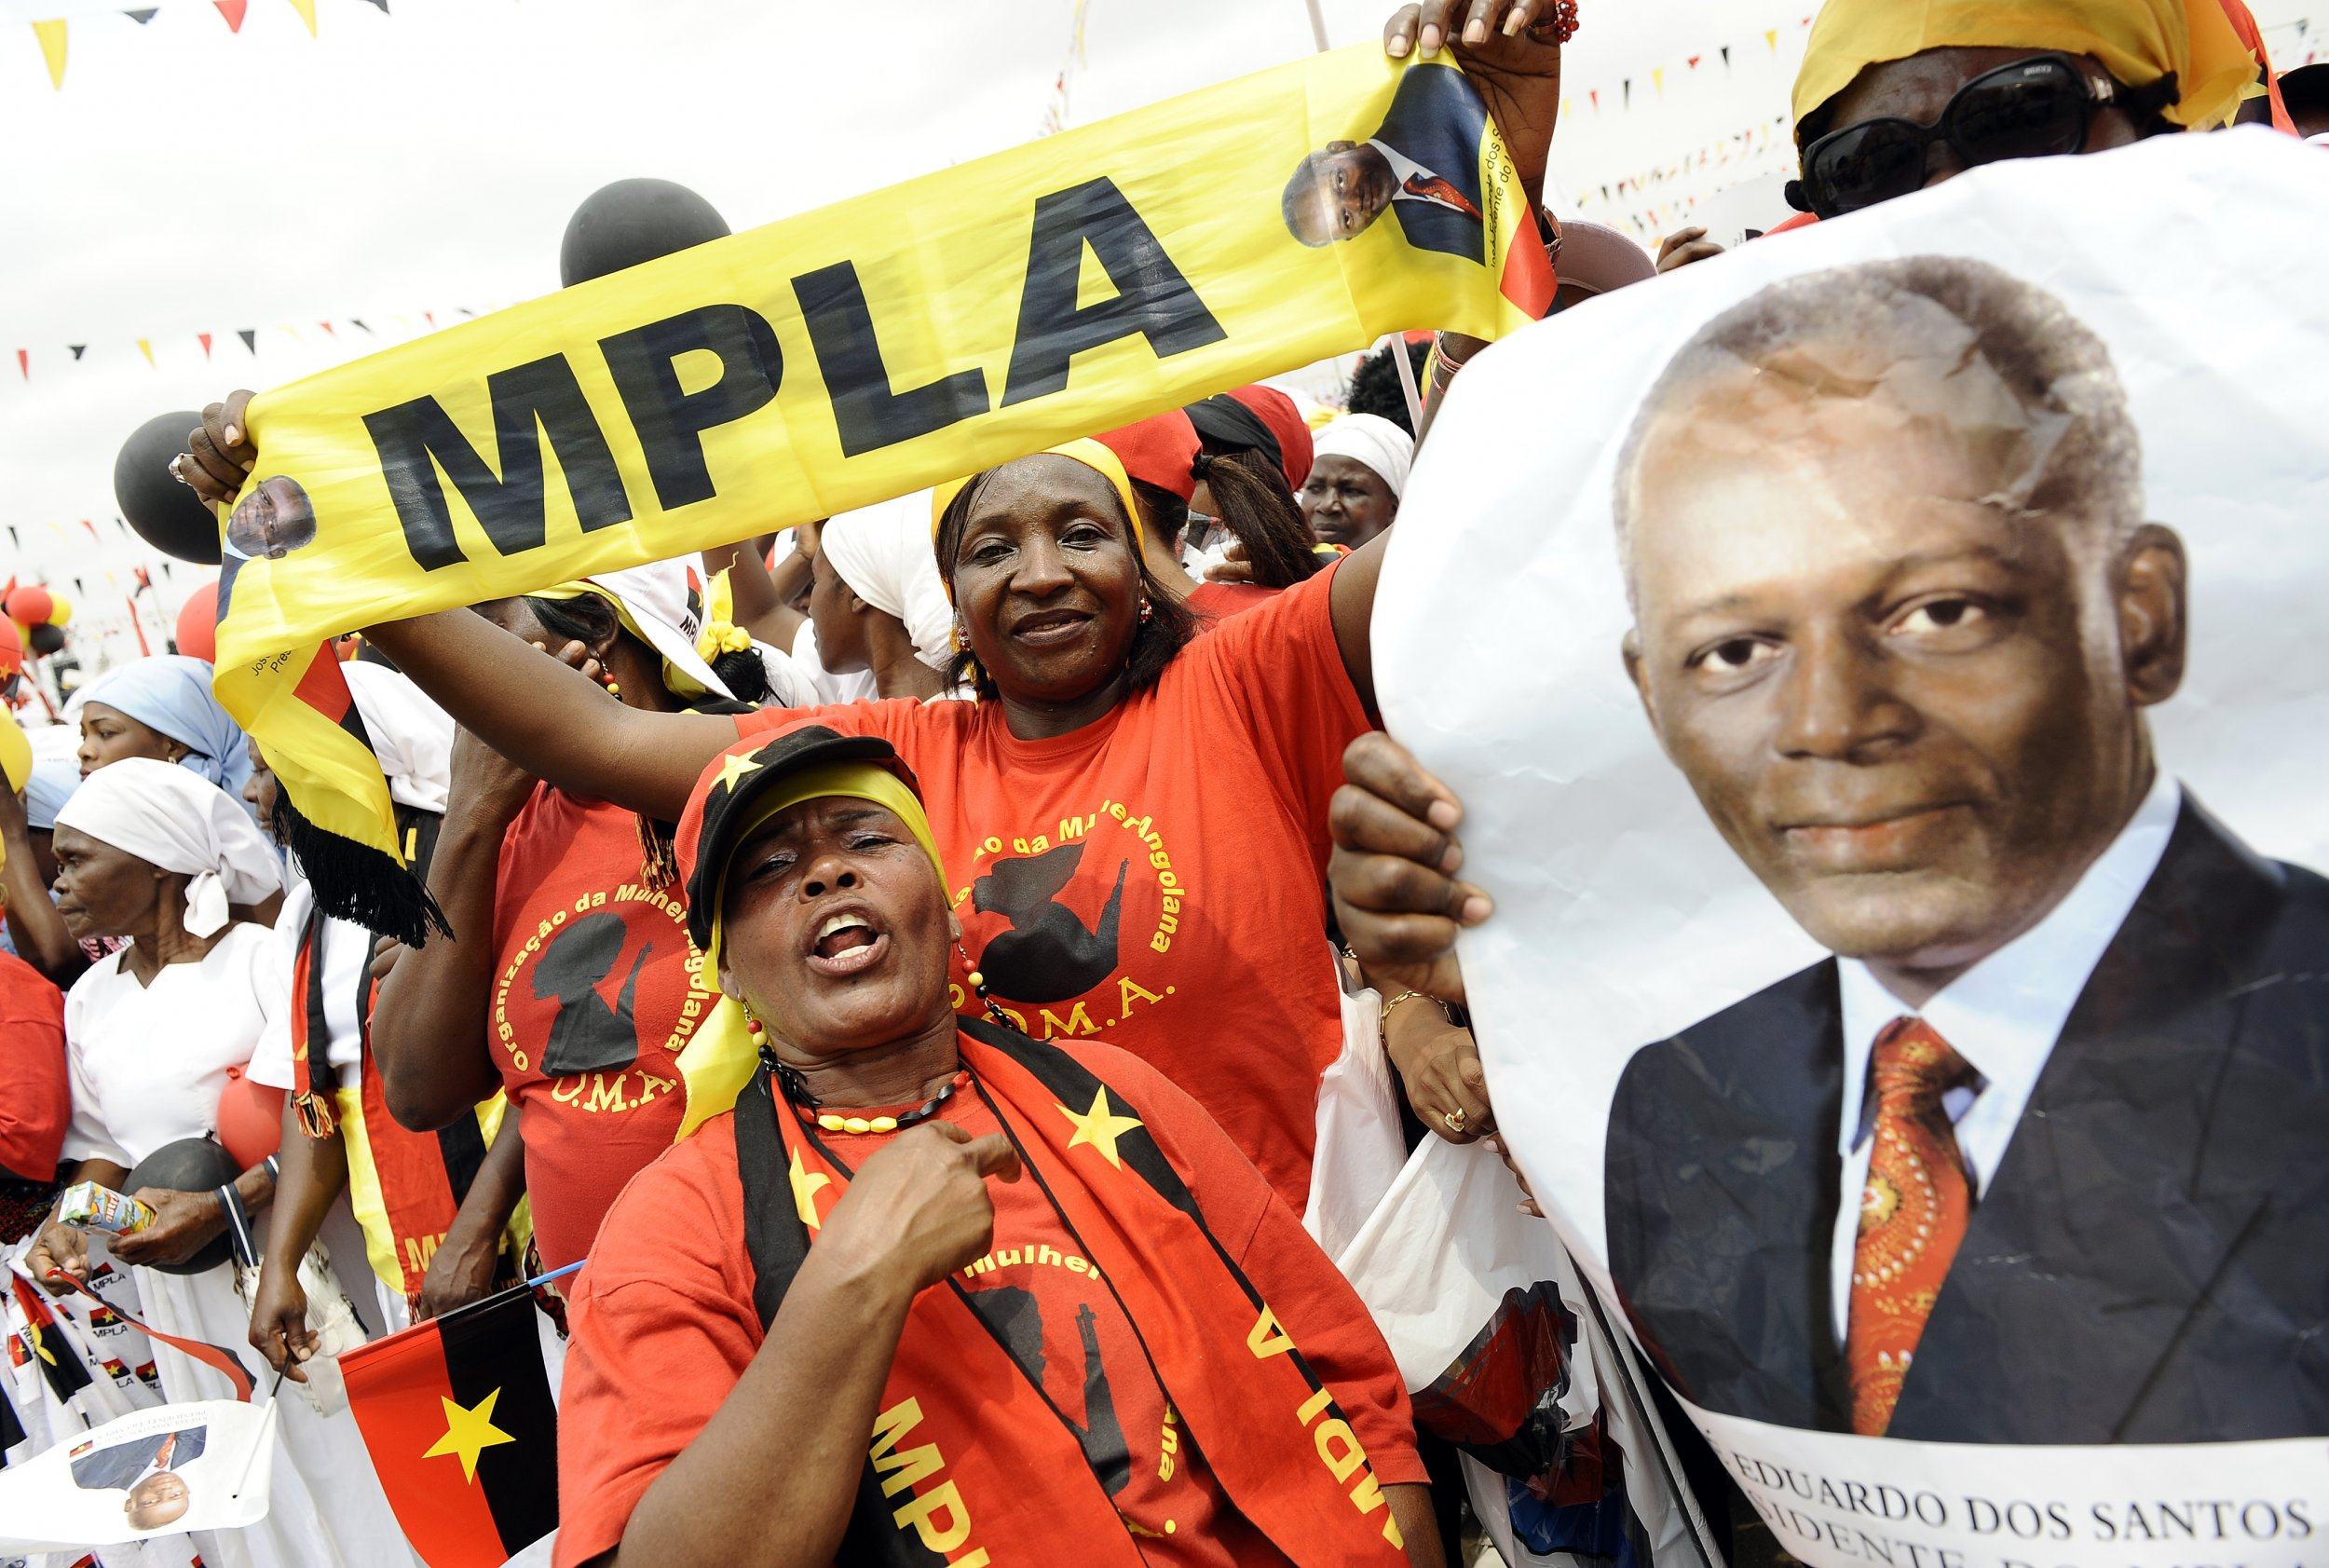 MPLA supporters with President dos Santos flag.